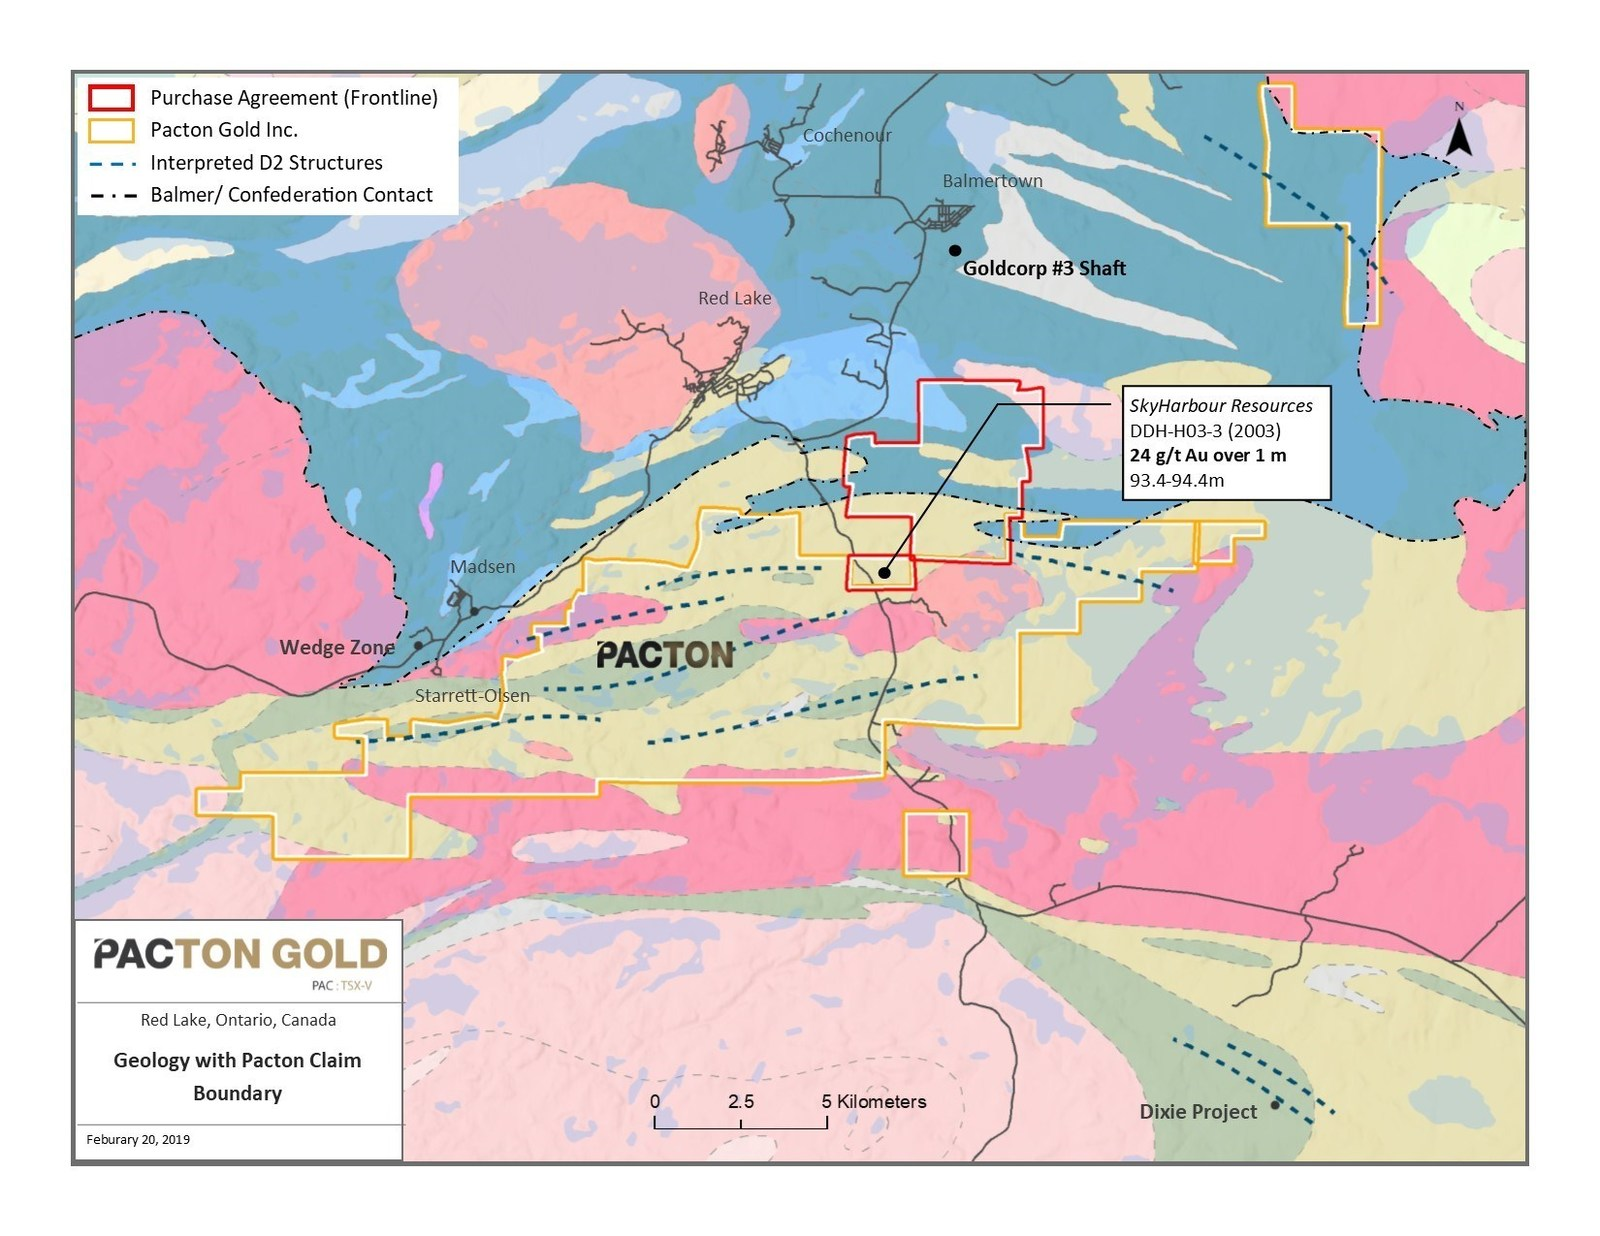 Figure 1. Location map of mineral claims acquired by Pacton Gold.